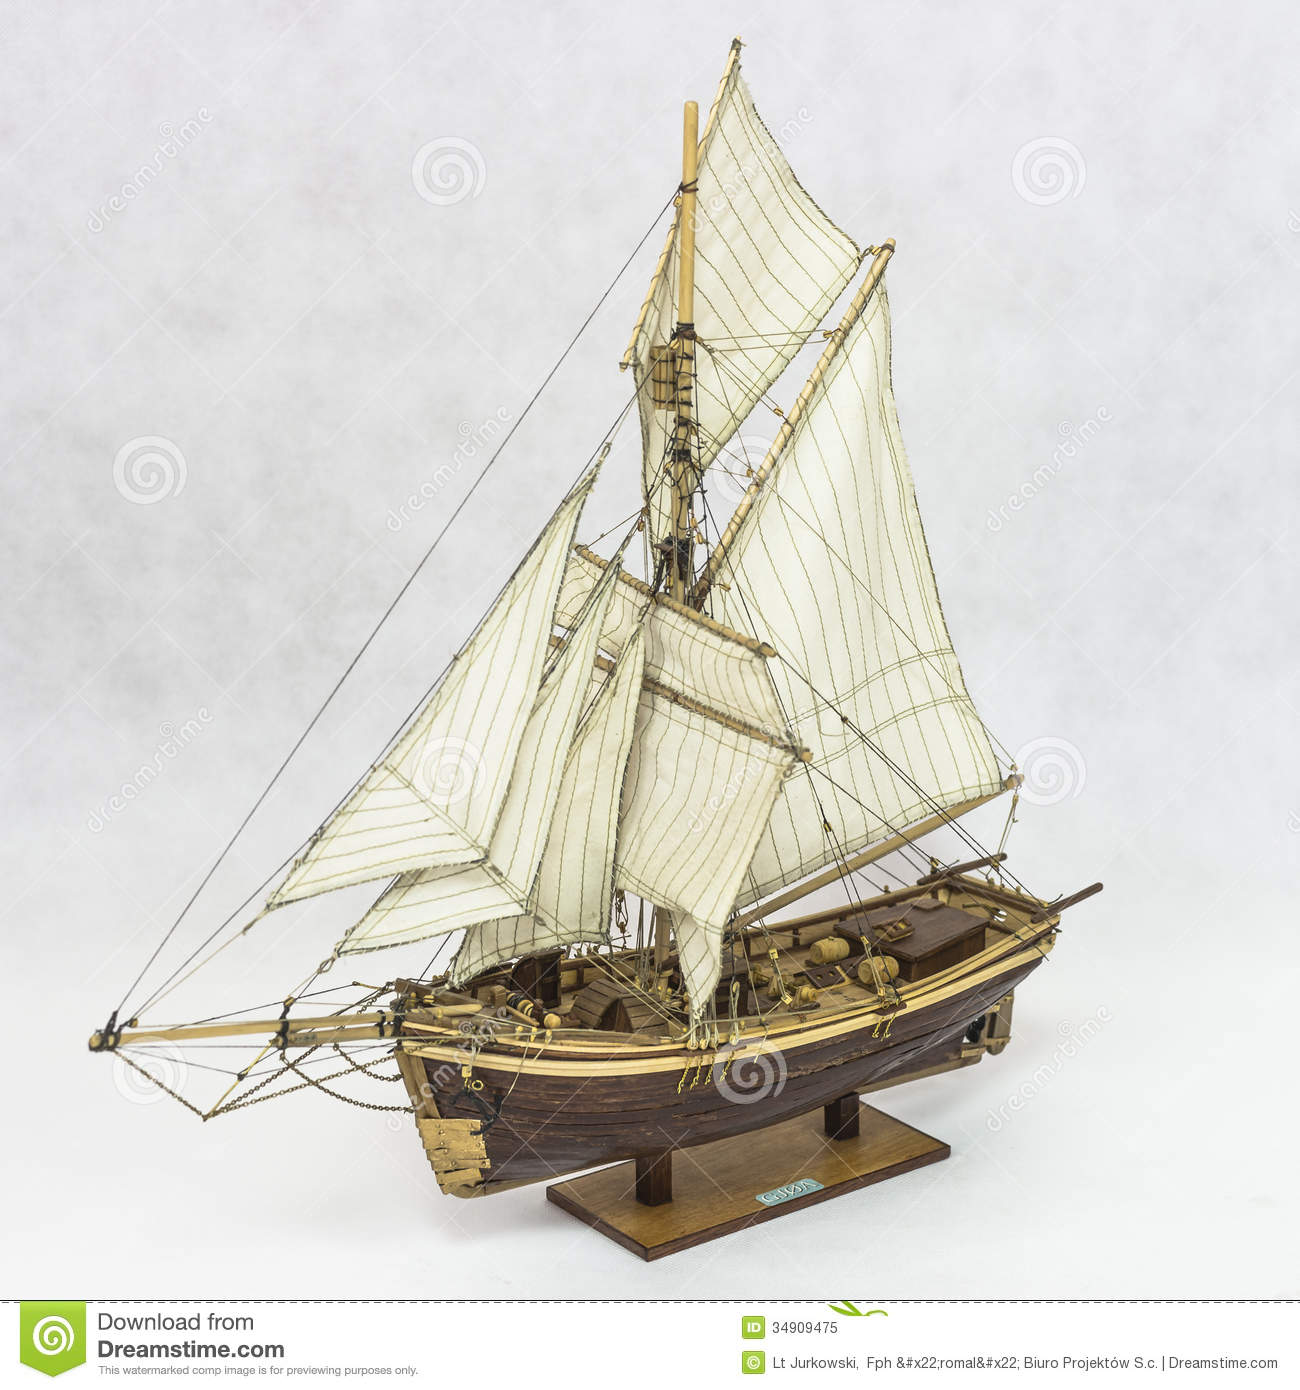 Sailing Ship Model Royalty Free Stock Photo - Image: 34909475